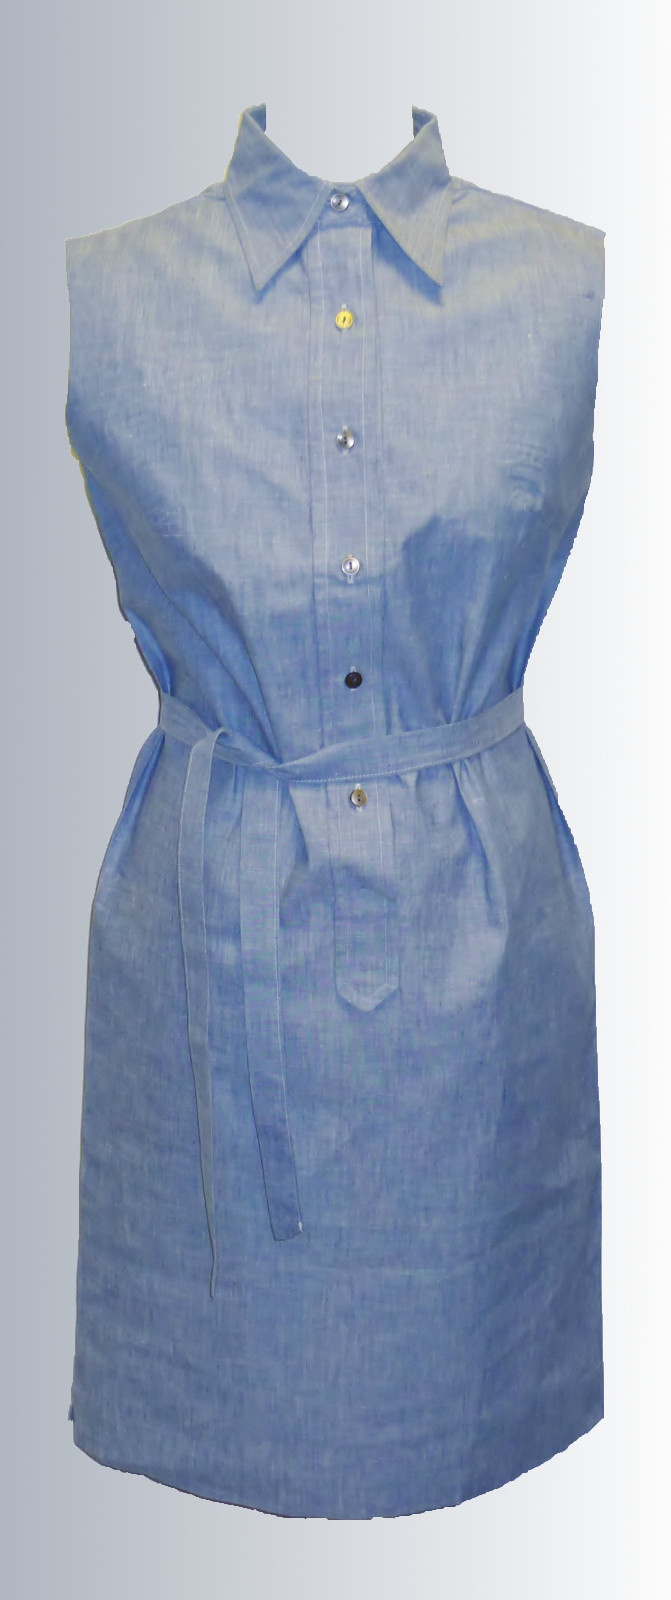 1960s Cotton Summer Shirt Dress from www.sixesandsevensvintage.com at £18.00  Size 10.